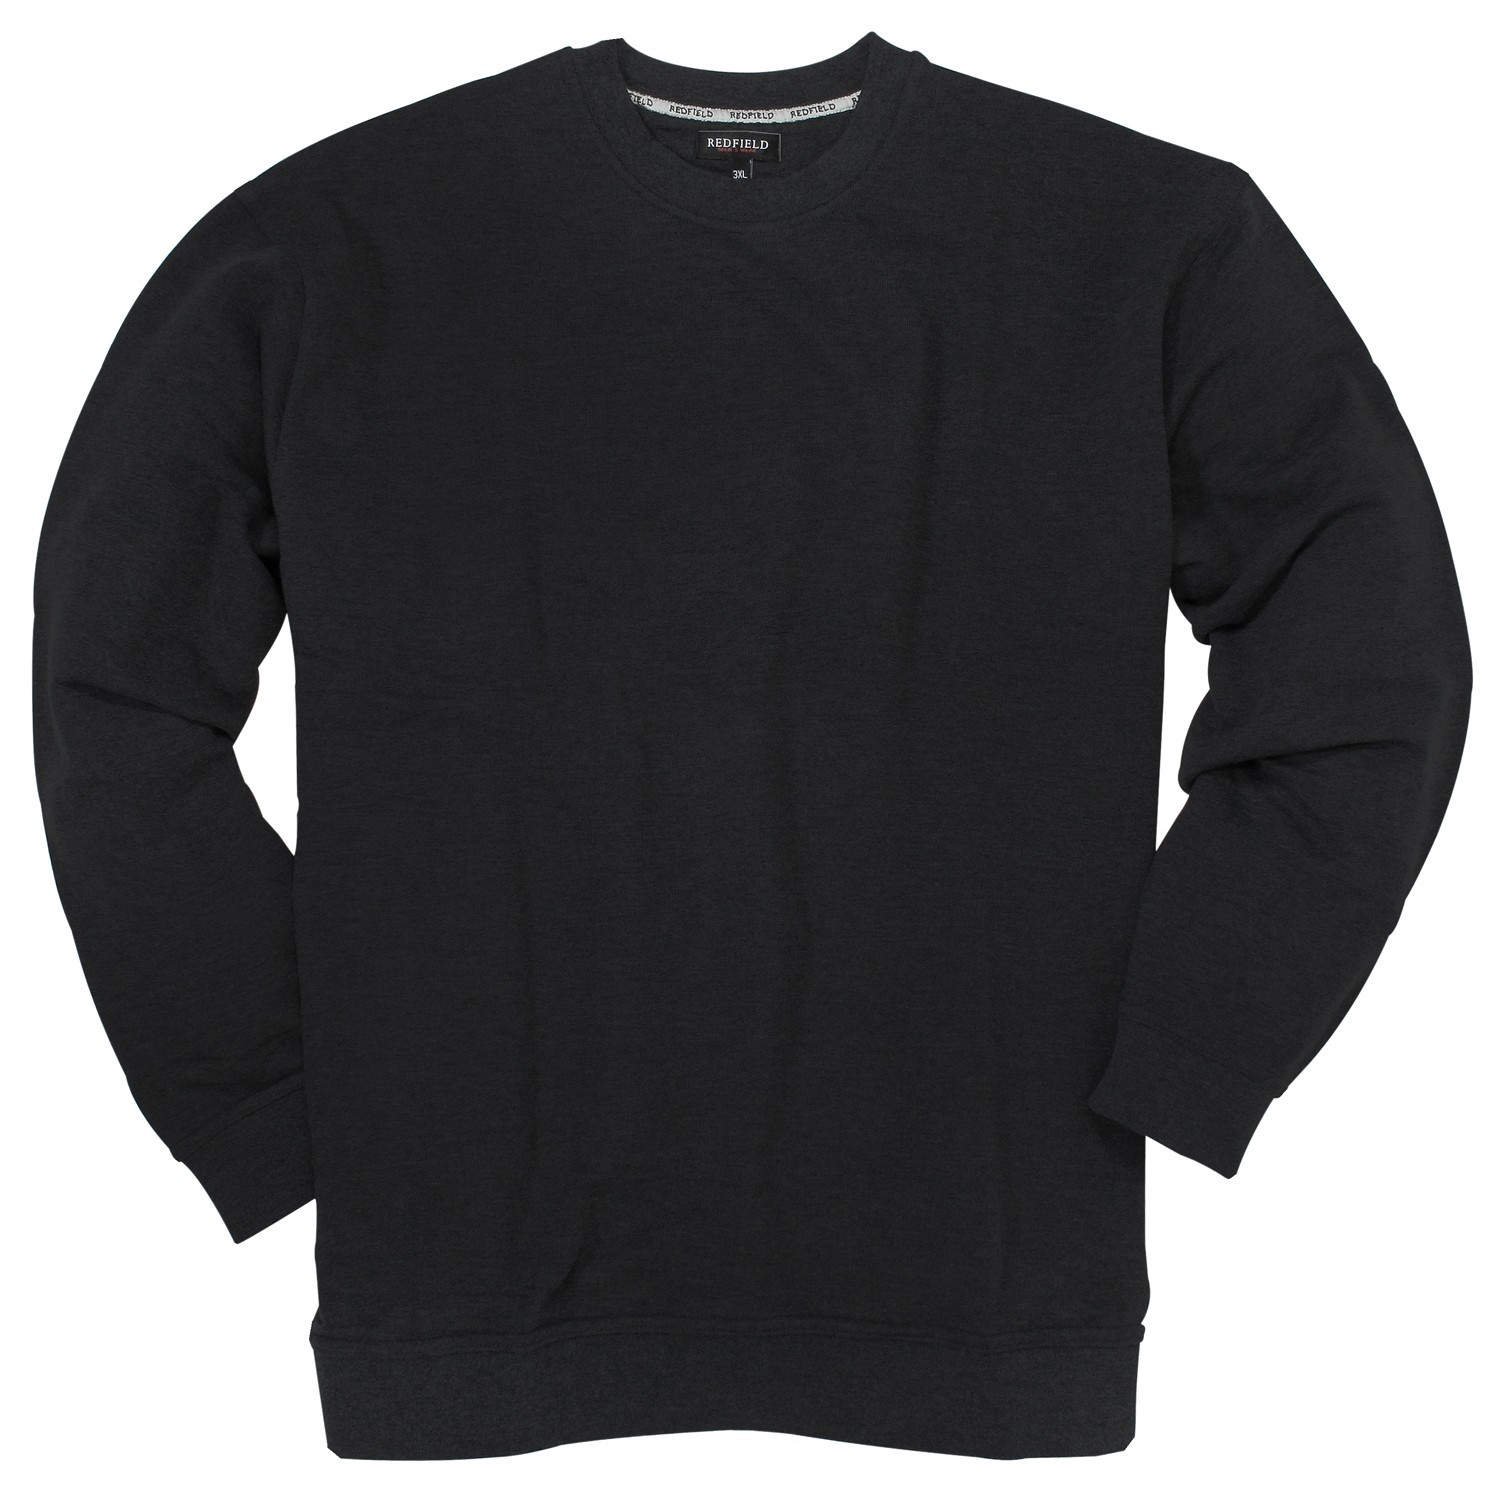 Detail Image to Black crew neck sweatshirt by Redfield in plus sizes up to 10XL